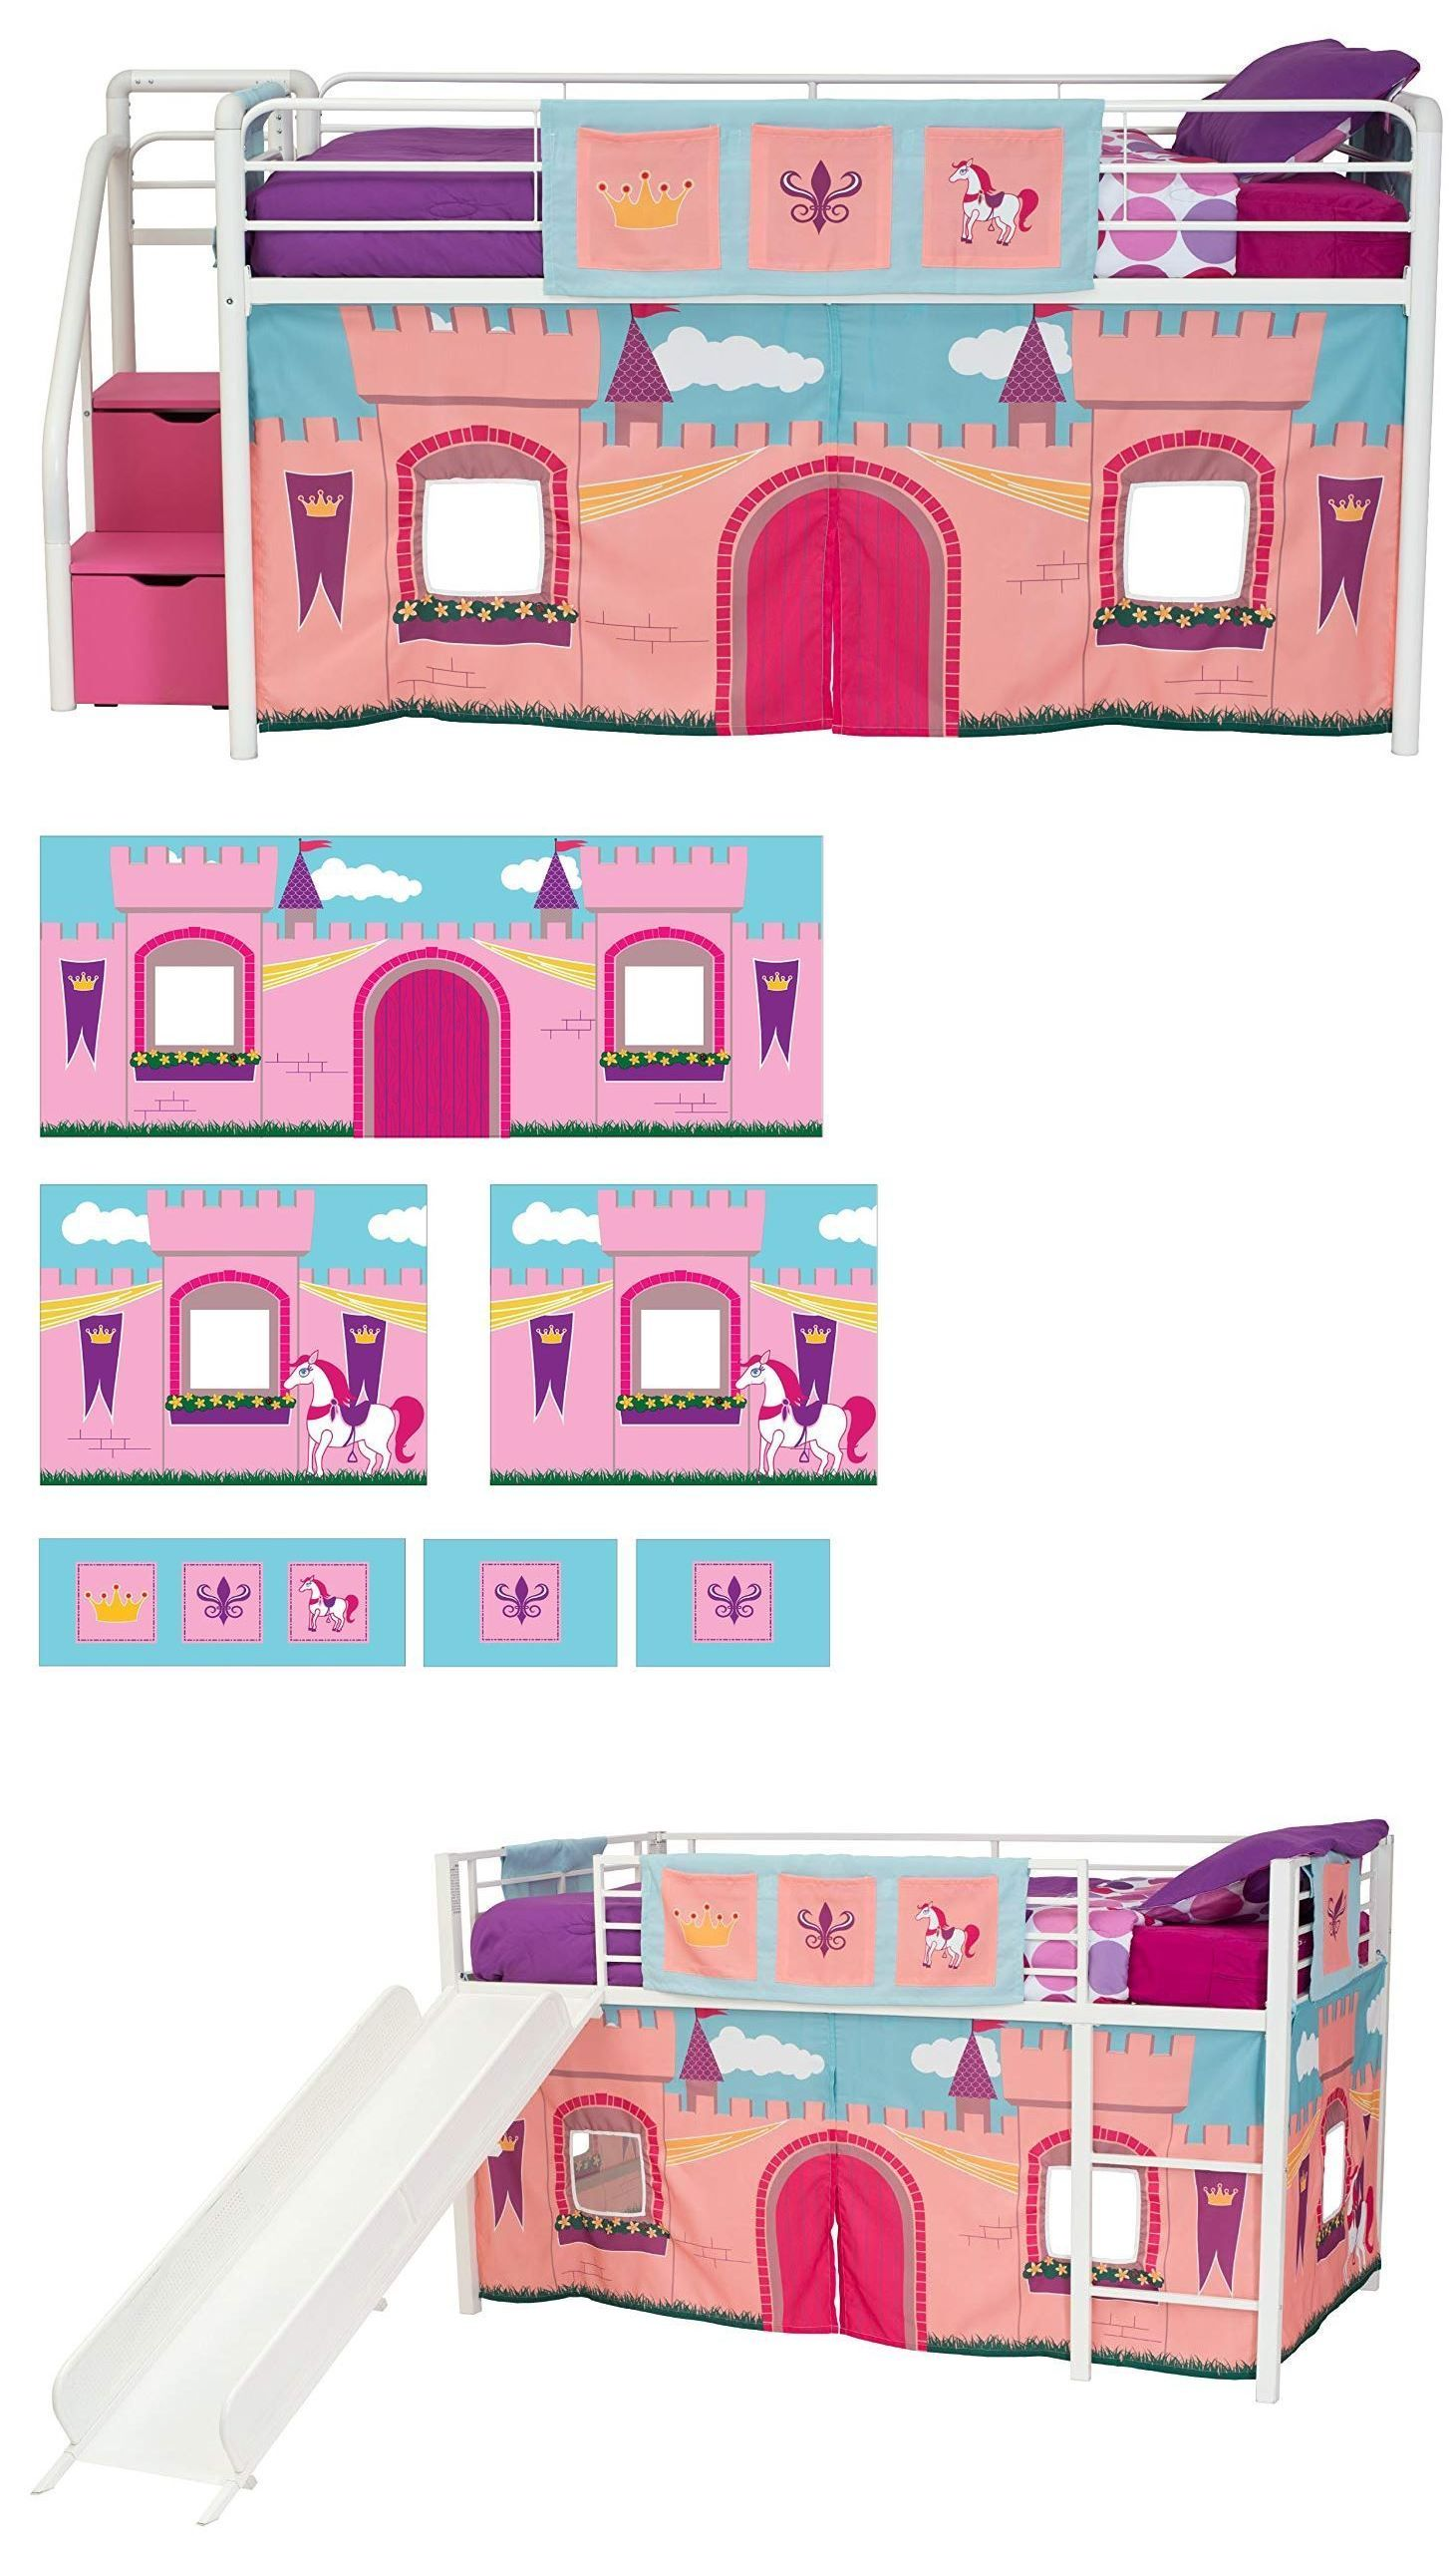 Bedroom Furniture 66742 Jr Loft Bed Curtain Set Junior Girls Kids Twin Princess Castle Fairytale Bed Junior Loft Beds Kids Twin Bedding Sets Fairytale Bedroom